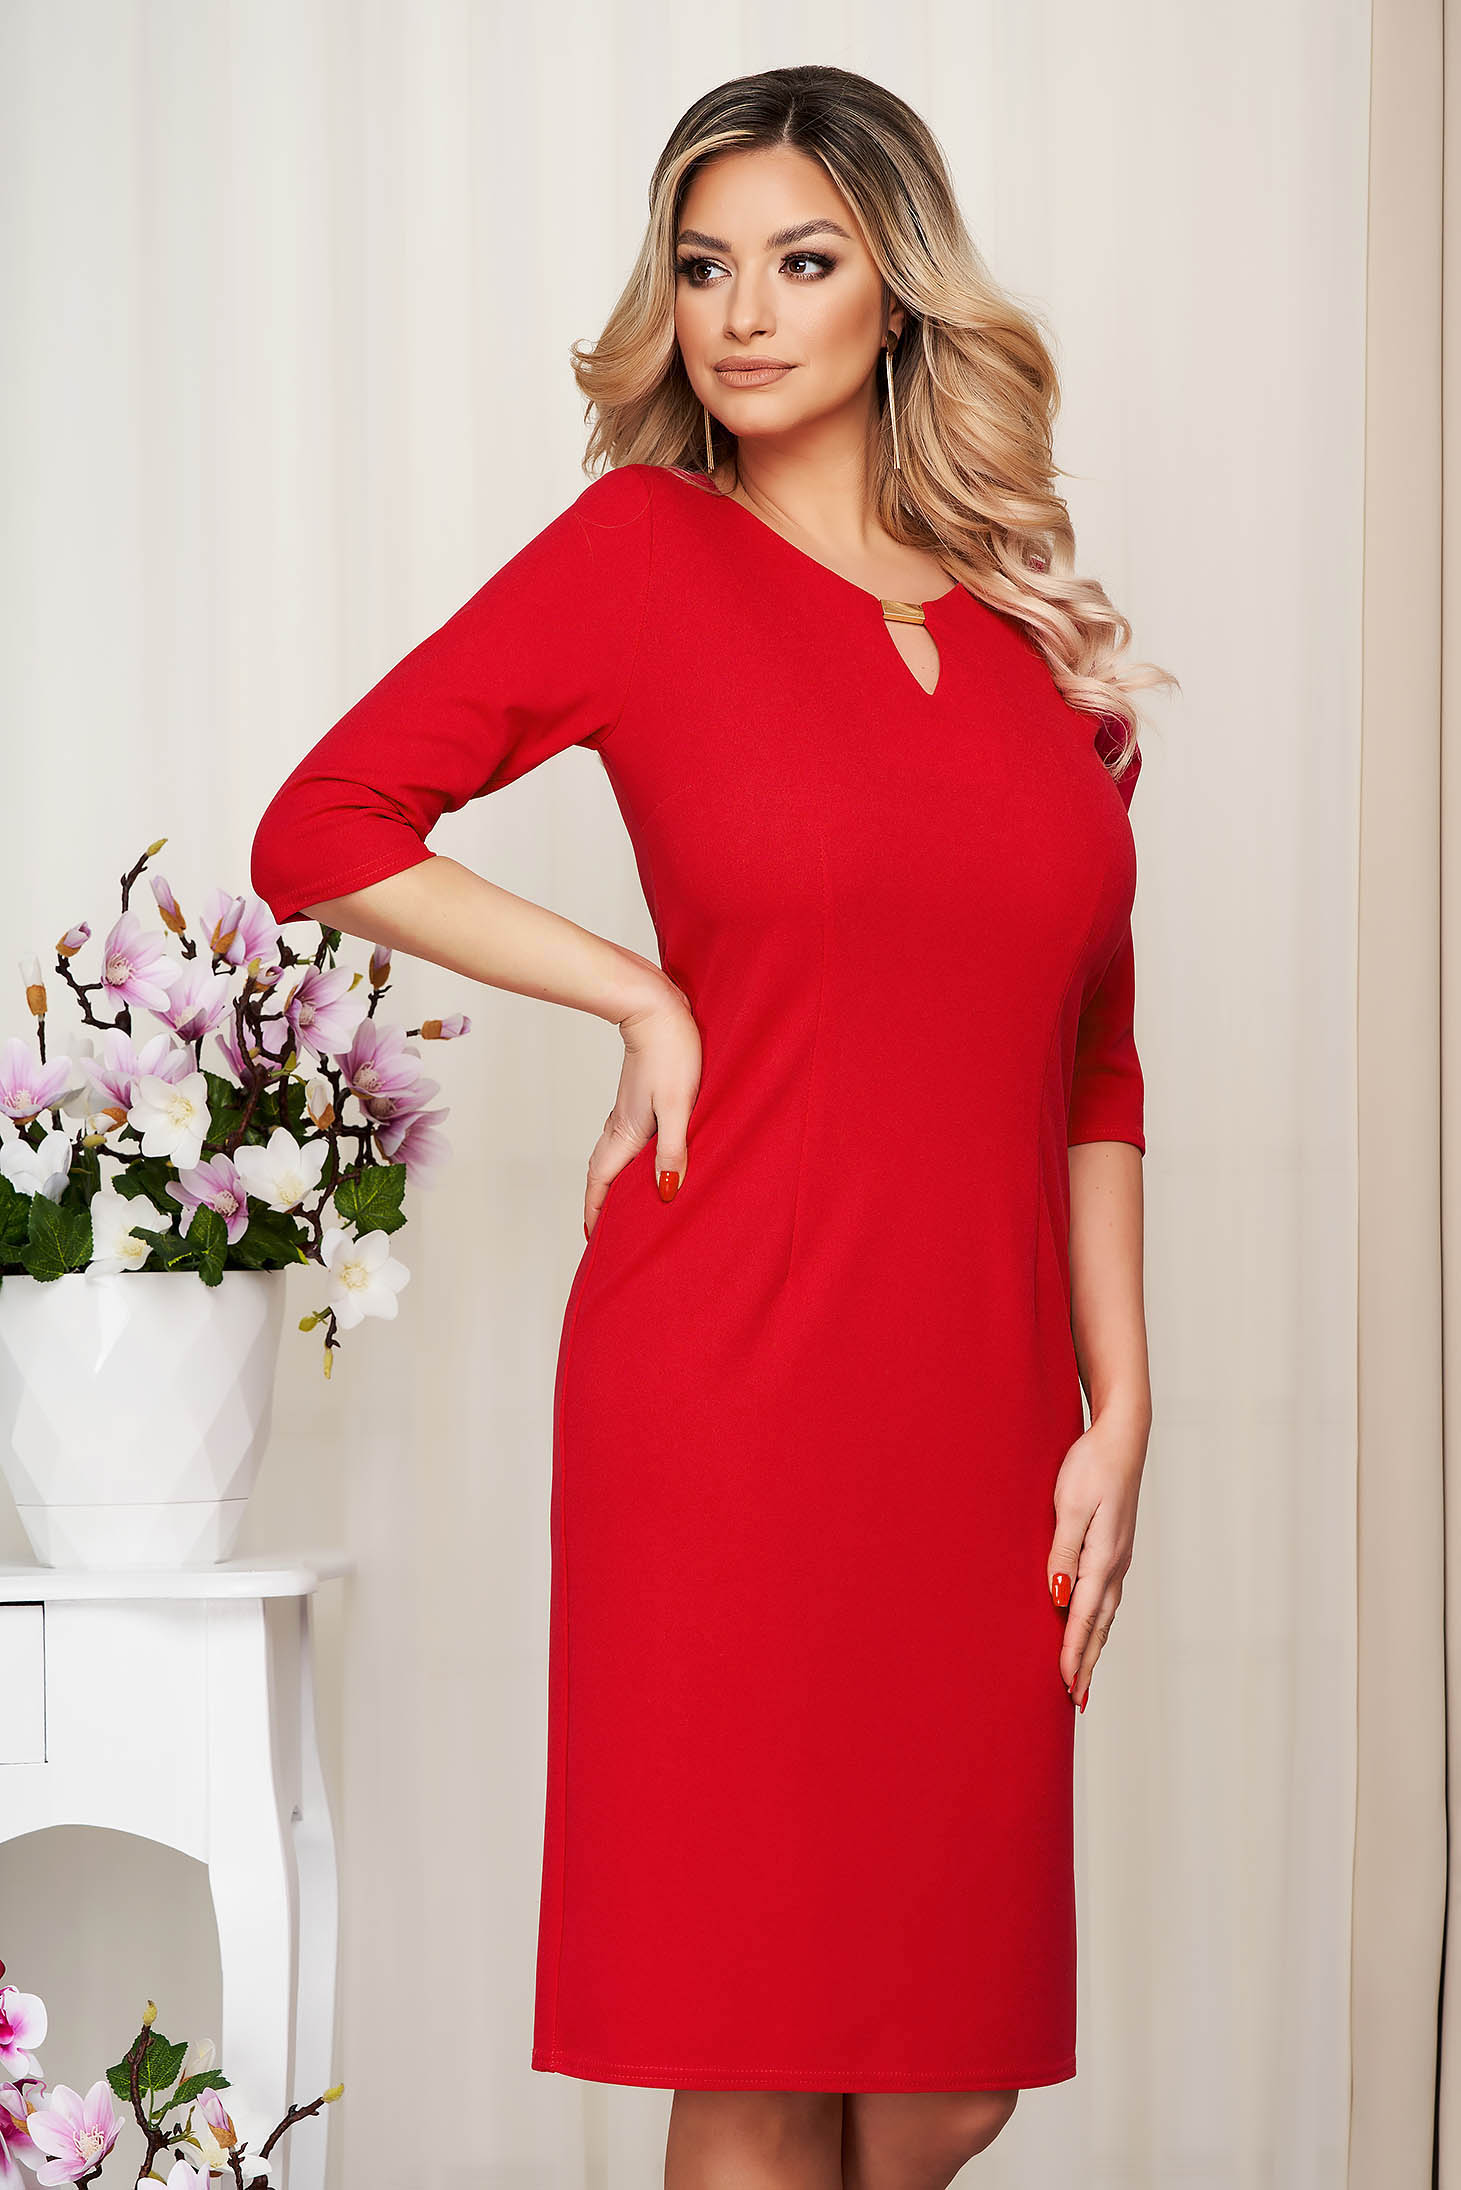 Dress red office short cut straight with metalic accessory